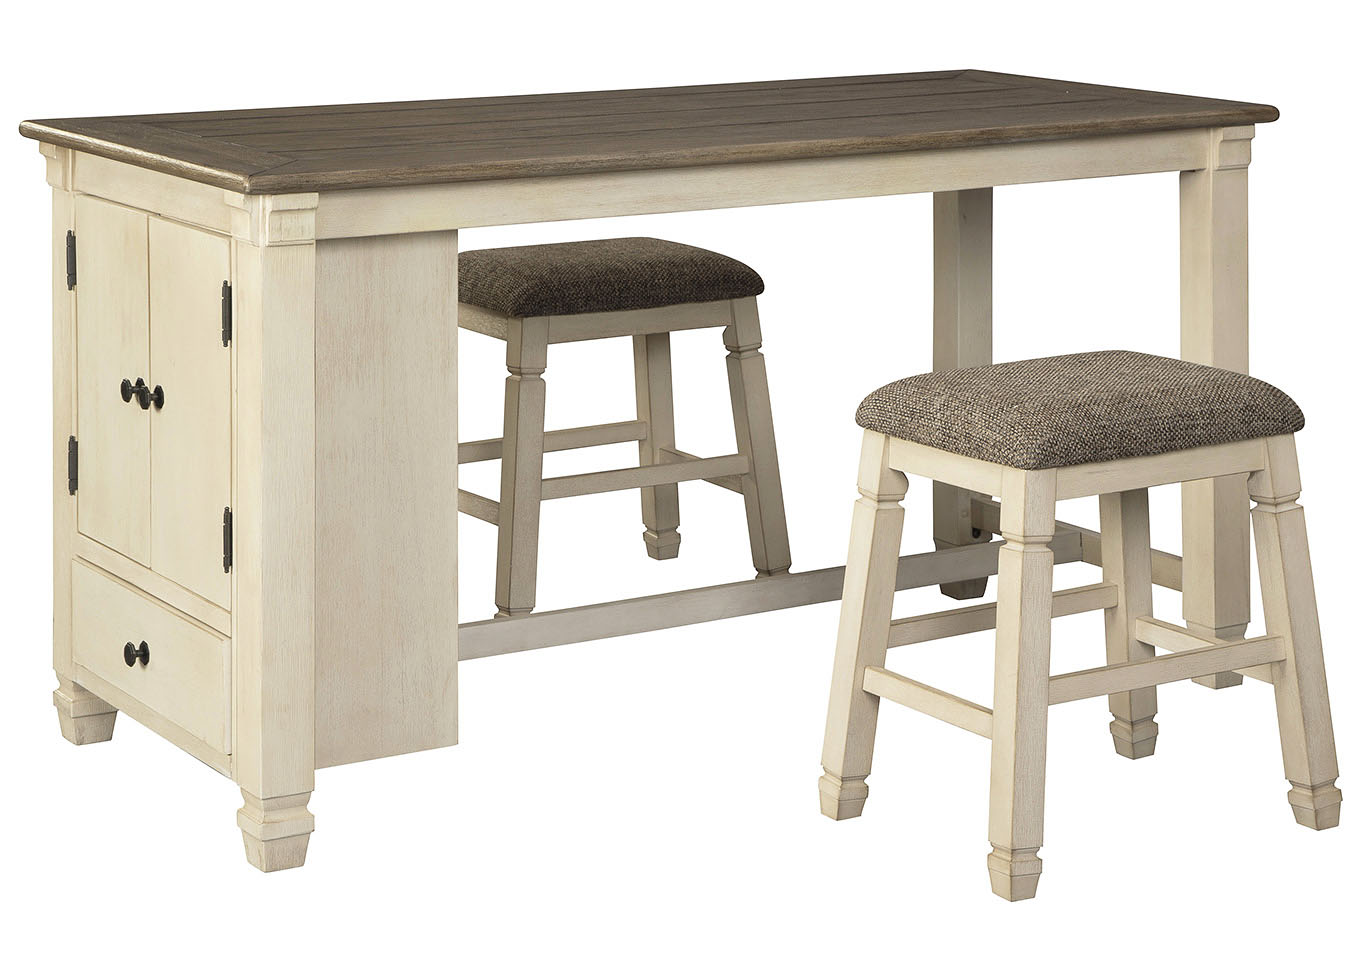 Bolanburg Antique White Rectangular Dining Table w/2 Upholstered Stools,Signature Design By Ashley